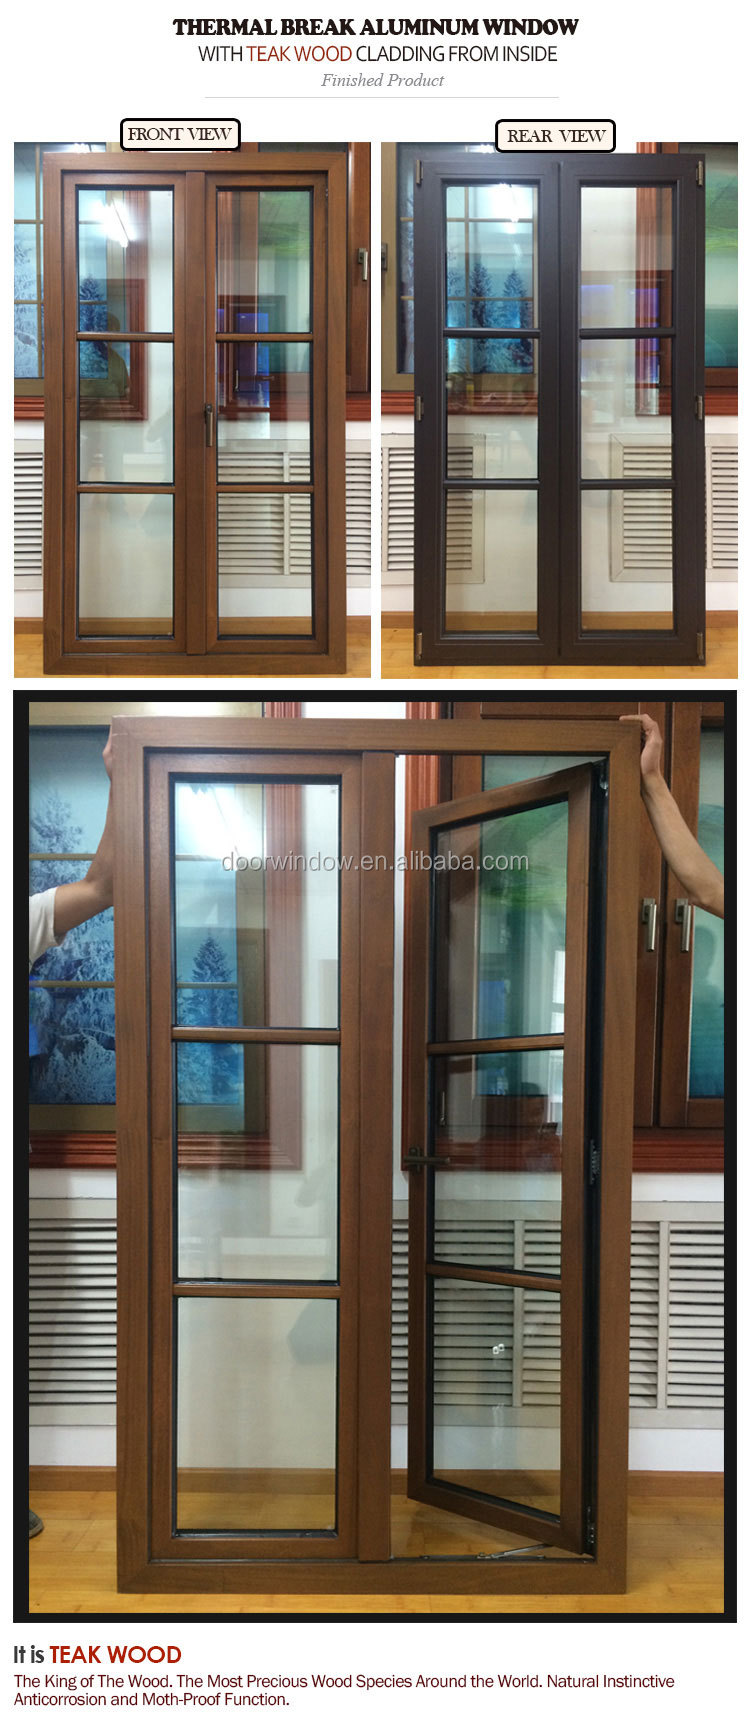 Owning window outward opening casement office interior windows